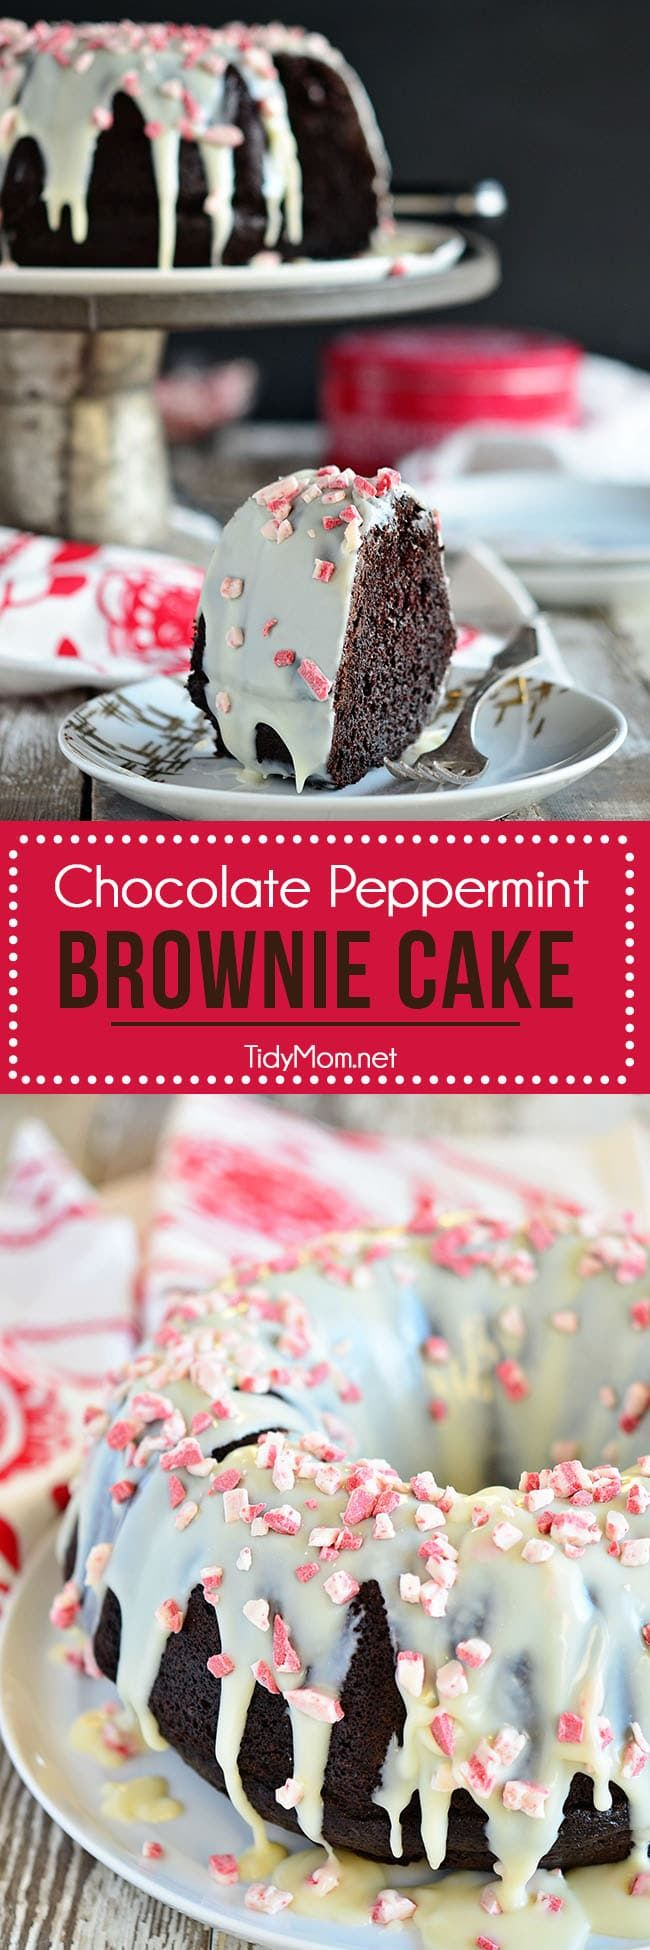 Chocolate Peppermint Brownie Cake Need a sure way to satisfy a true chocolate lover for any occasion? This Chocolate Peppermint Brownie Cake is a dense, but not heavy, moist deep dark chocolate cake with a subtle hint of peppermint, topped with a white chocolate peppermint ganache. Print recipe + quick how-to video at